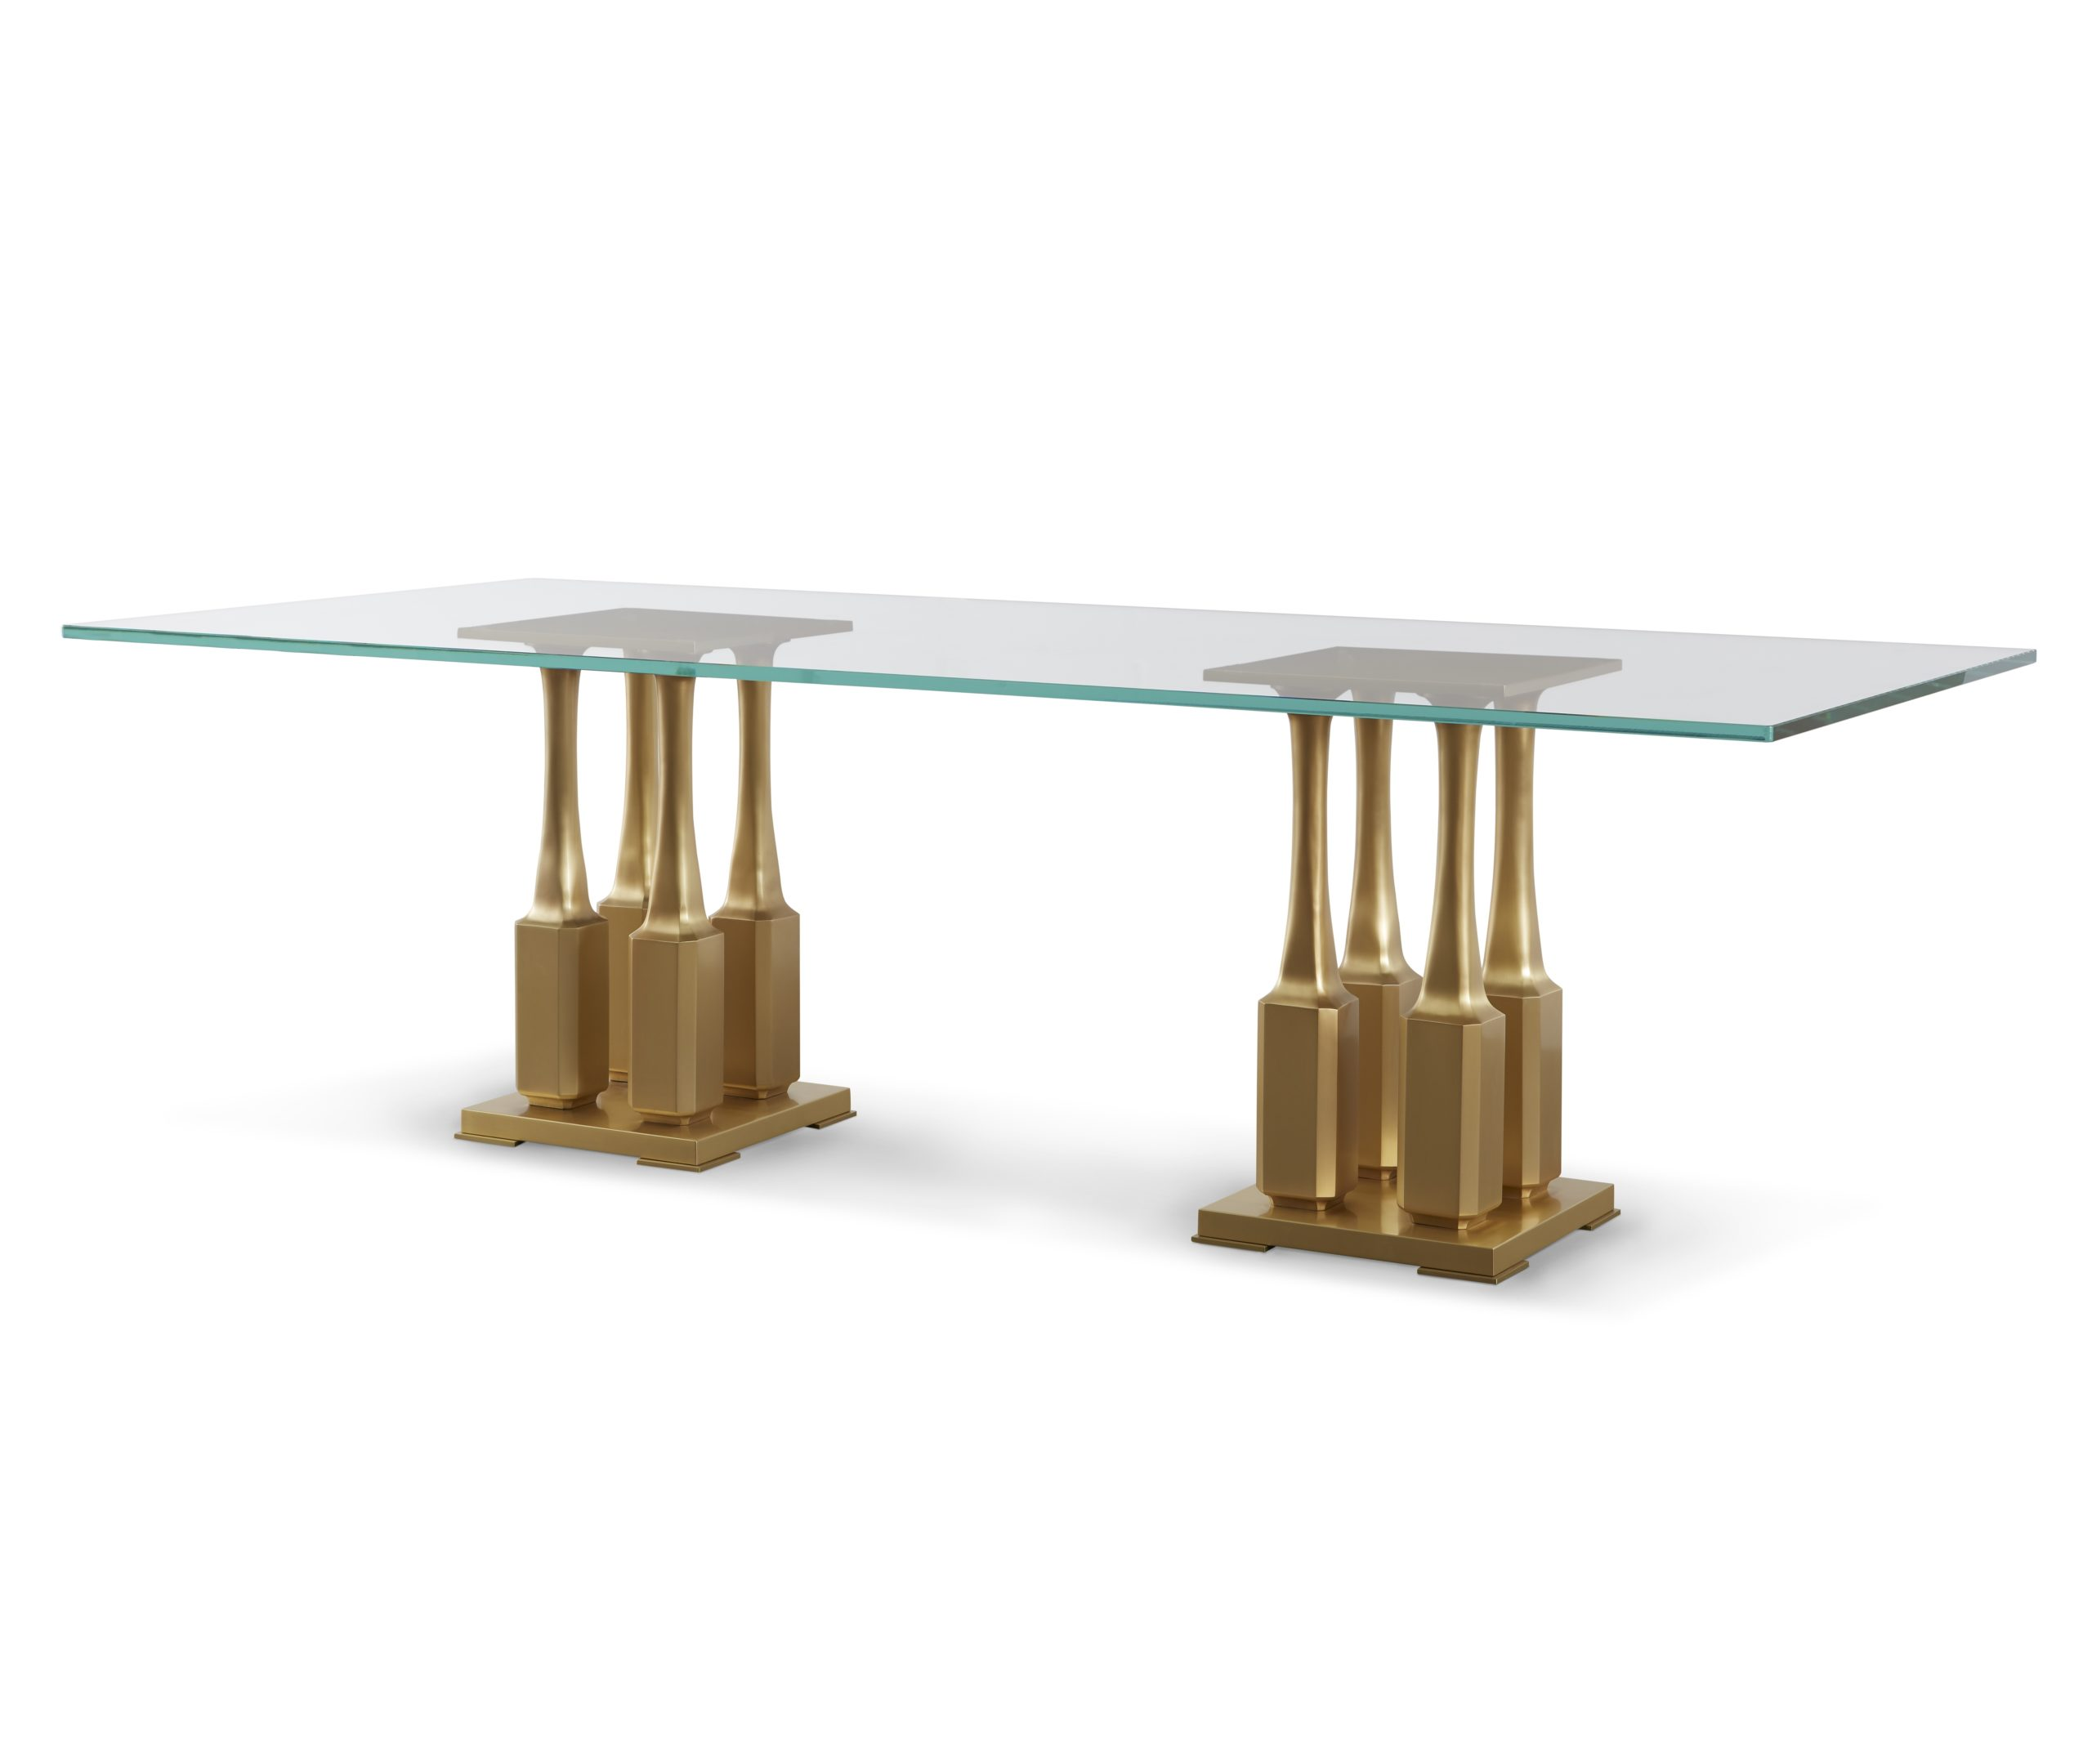 Baker_products_WNWN_villa_dining_table_BAA3237_FRONT_3QRT-scaled-2